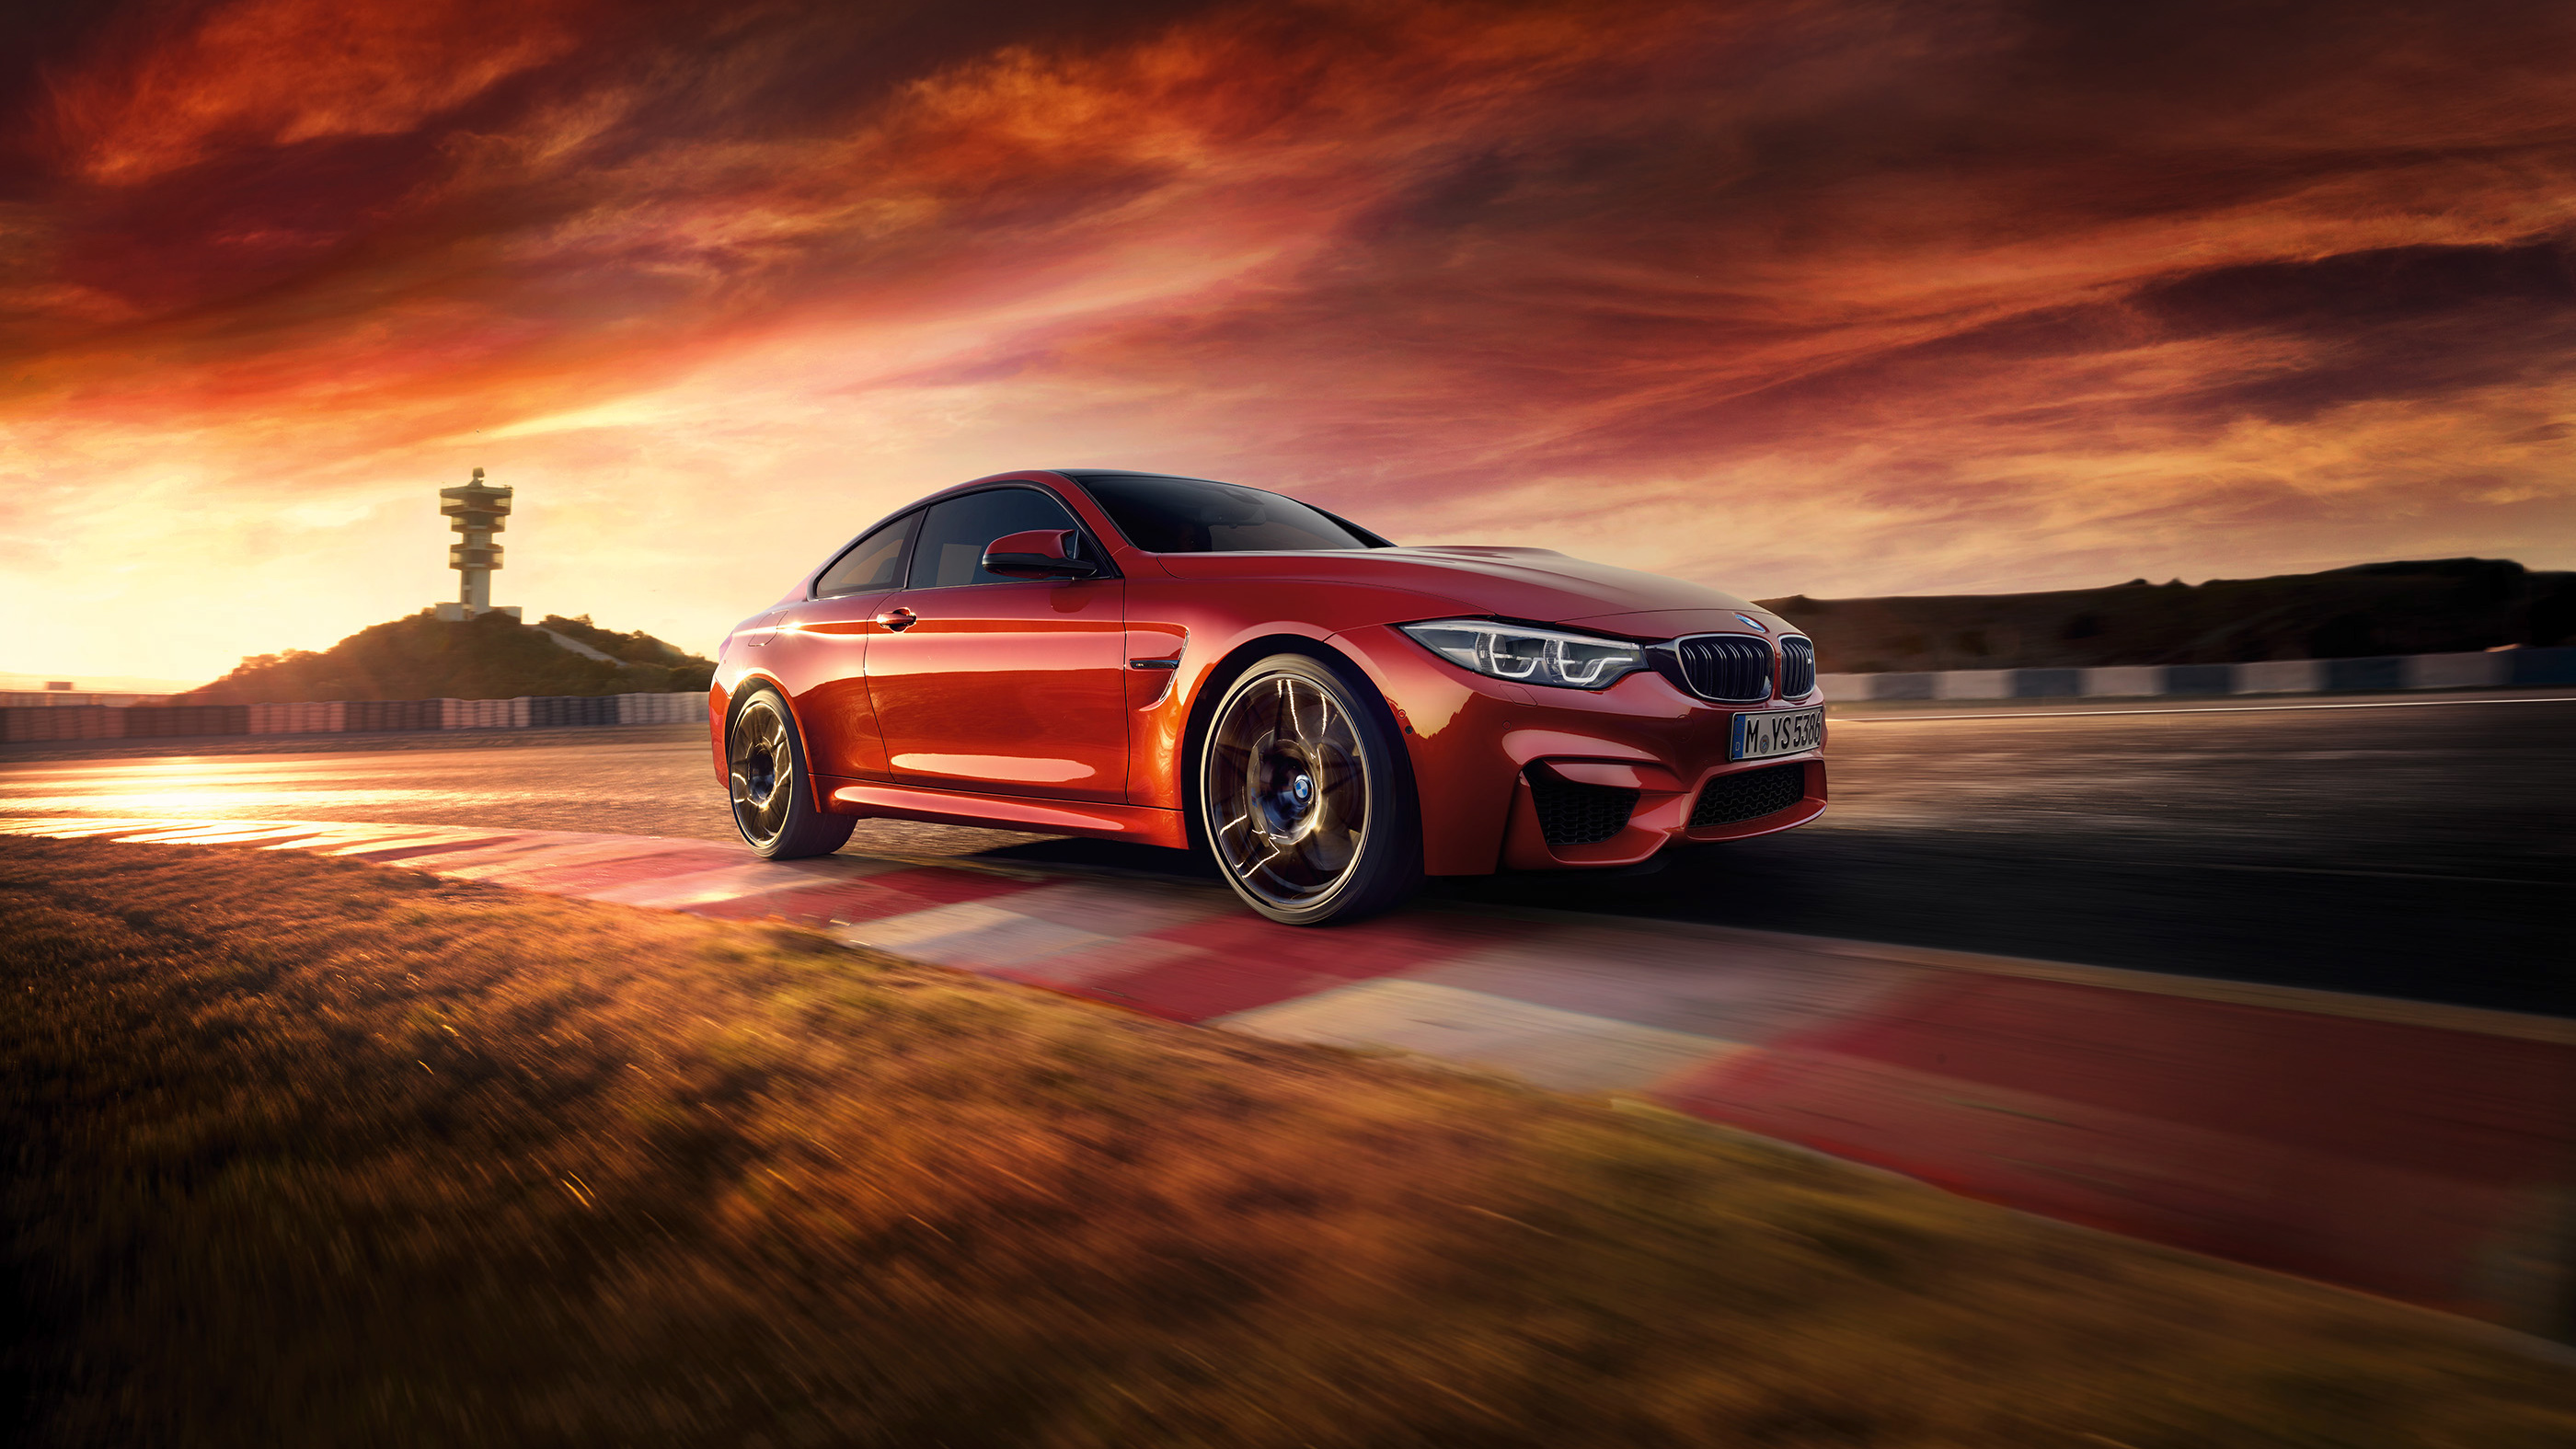 Bmw M4 Coupe 2017 Wallpaper Hd Car Wallpapers Id 8087